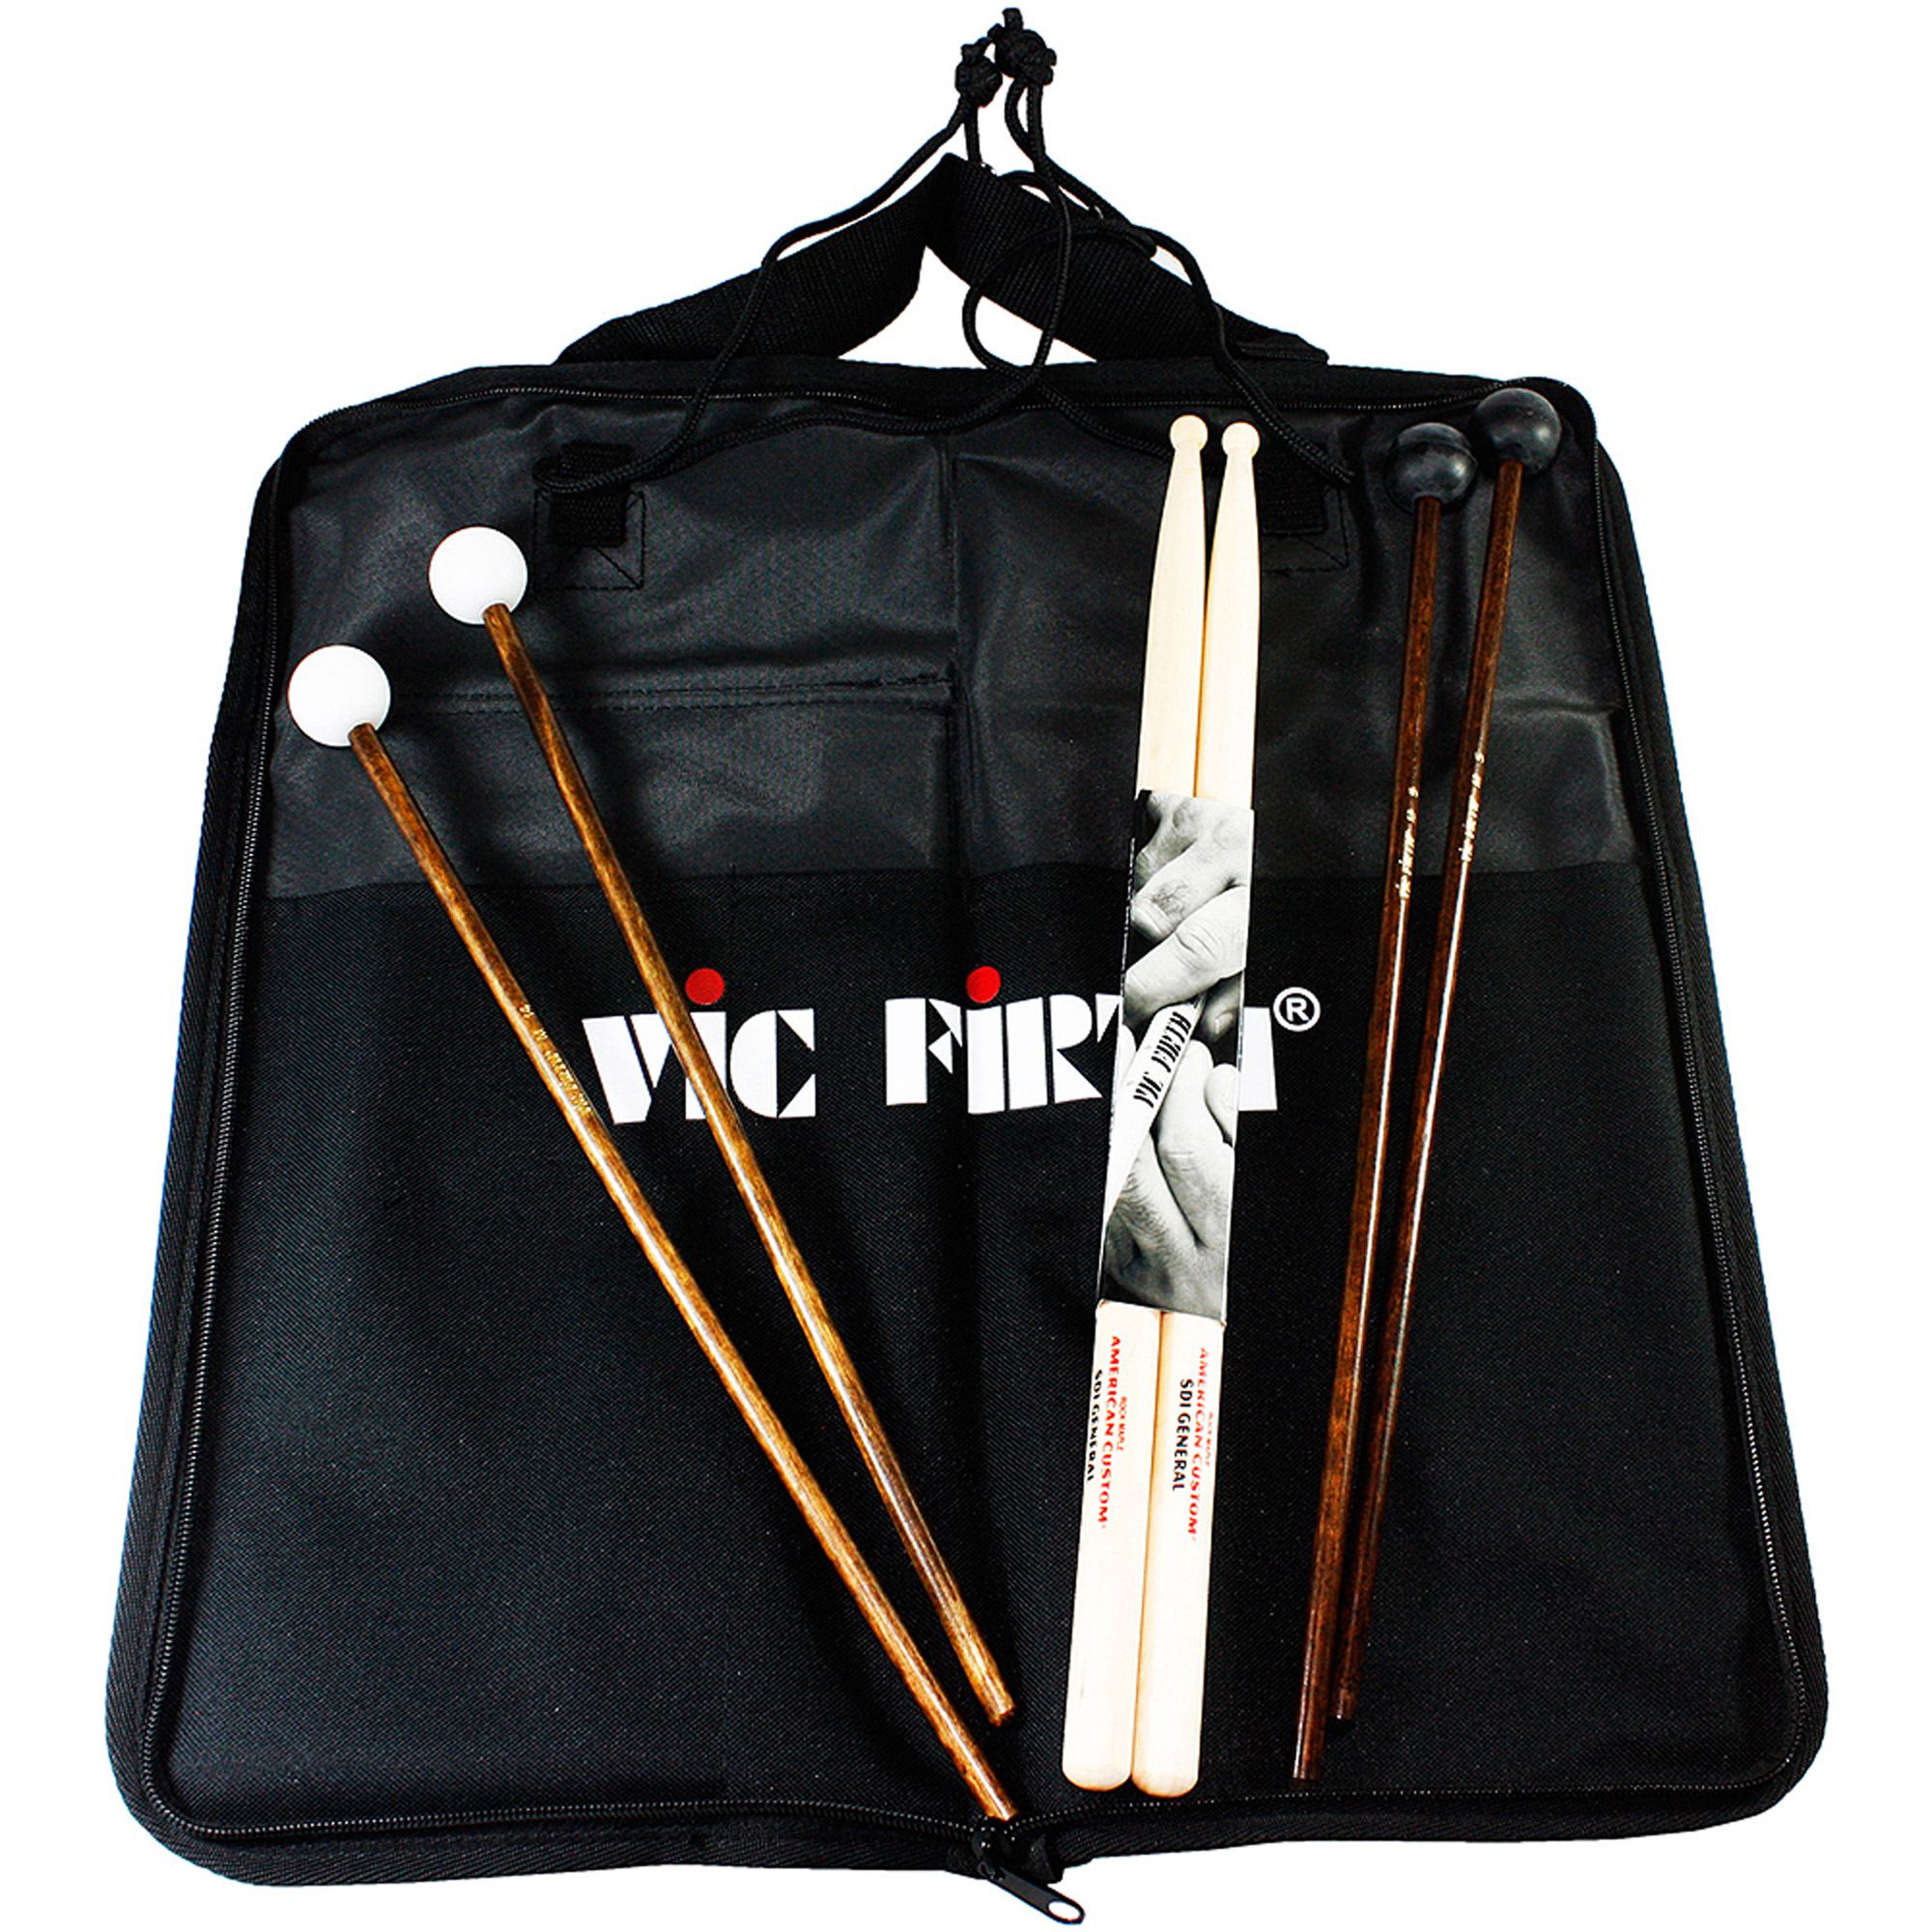 Vic Firth EP1 Education Pack 1 w/ Stickbag, SD1 Sticks, M5 & M14 Mallets